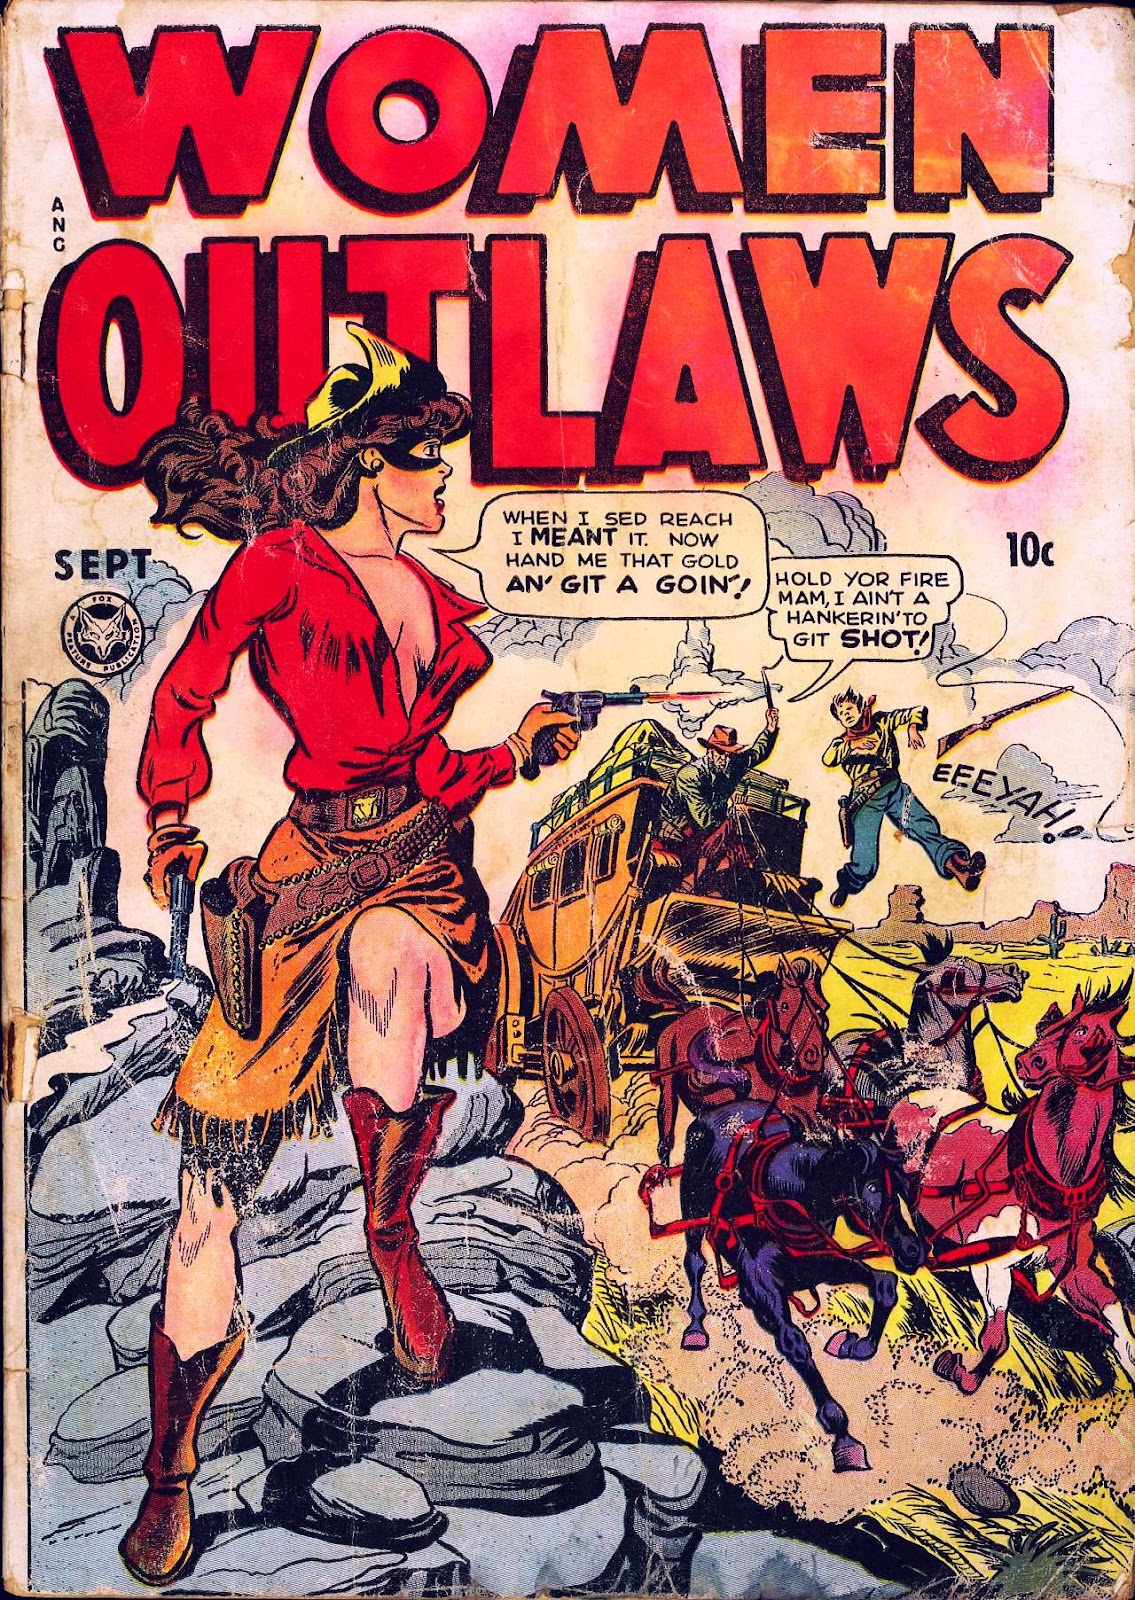 Read online Women Outlaws comic -  Issue #2 - 1